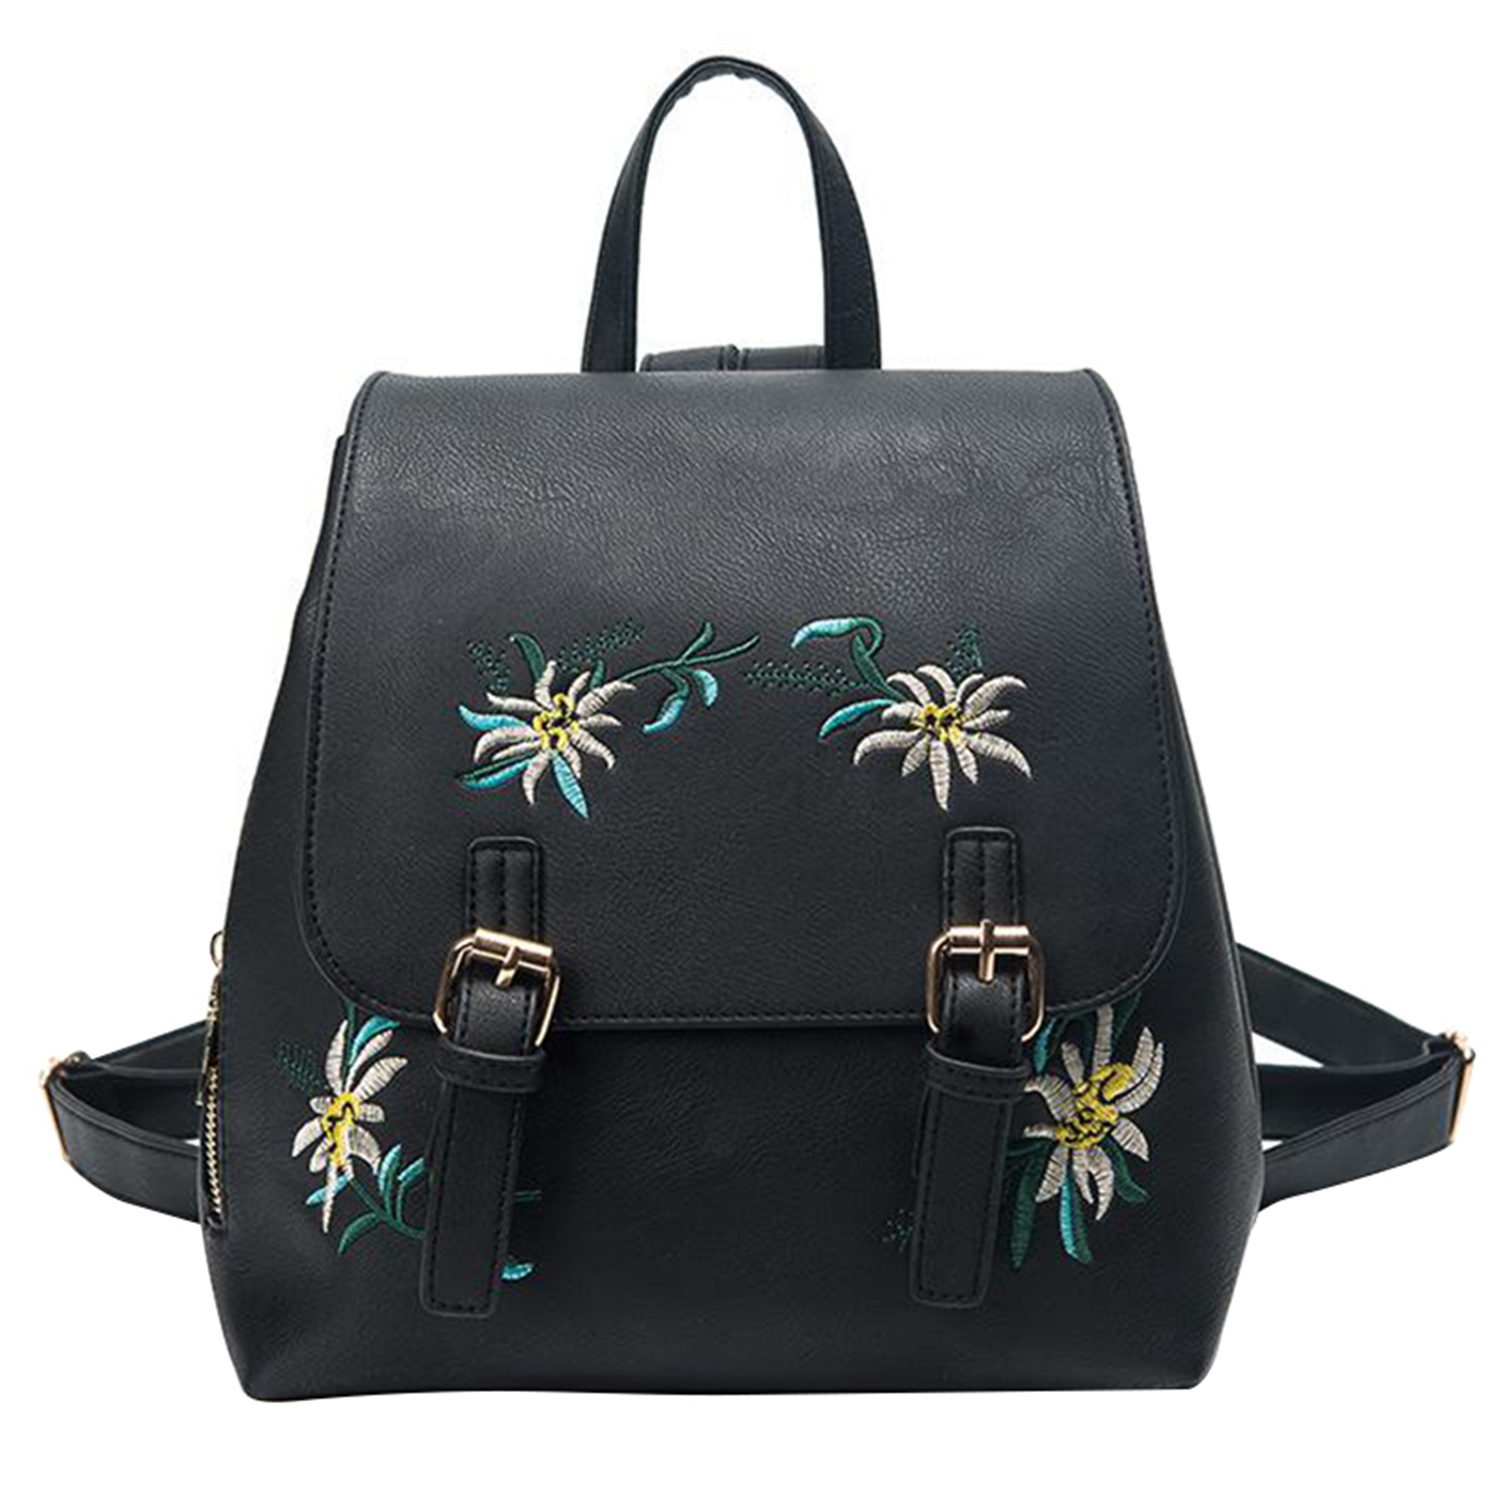 FGGS-Embroidered Lady Backpack Fashion Casual Pu Leather Ladies Young Girl Schoolbag